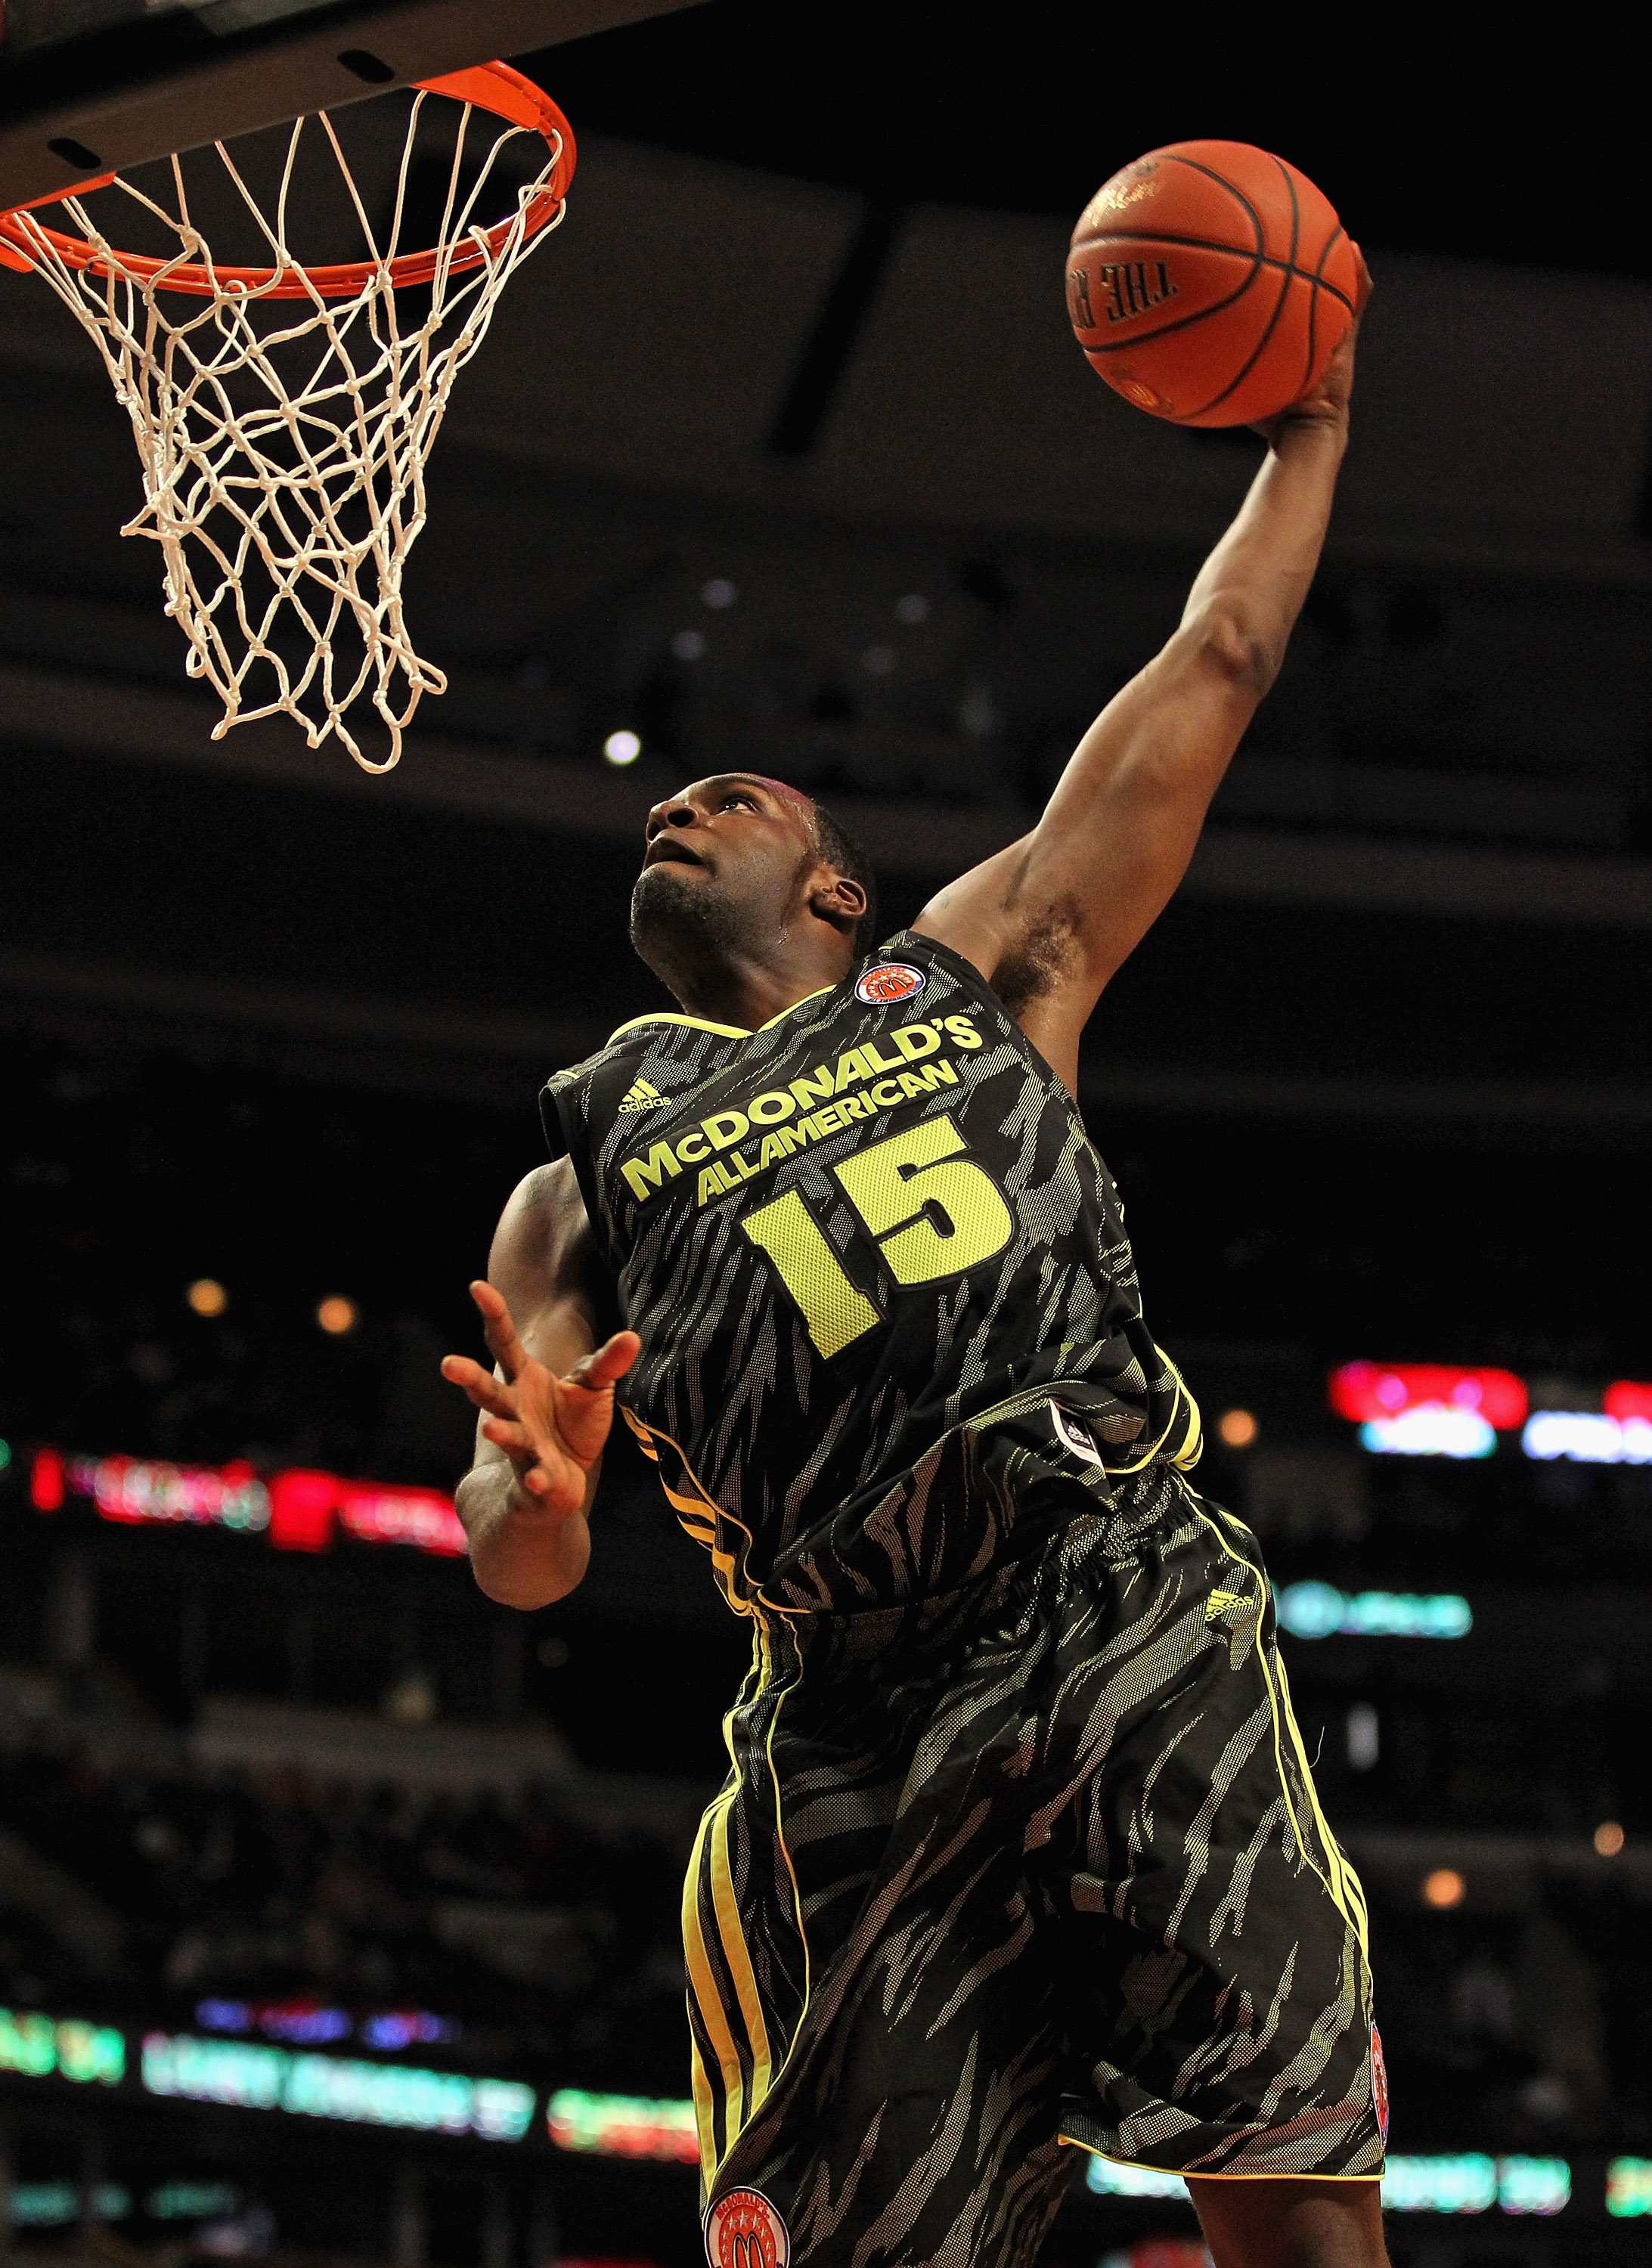 Shabazz Muhammad goes up for a dunk during the 2012 McDonald's All American Game. (Getty Images)